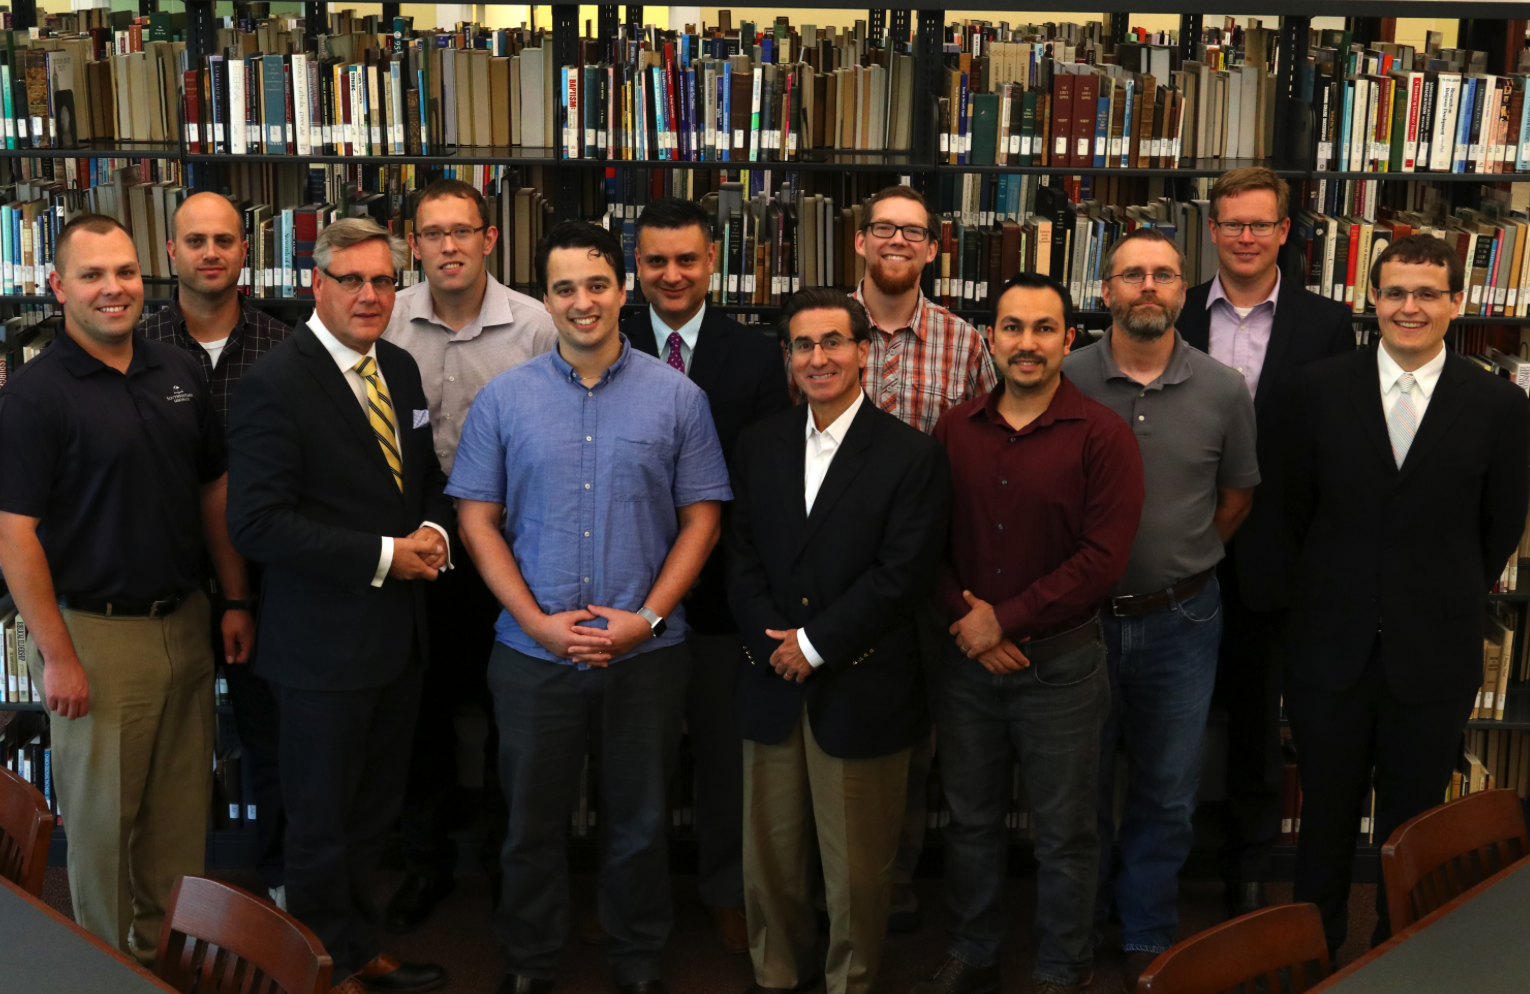 The first PhD class at Puritan Reformed Seminary.